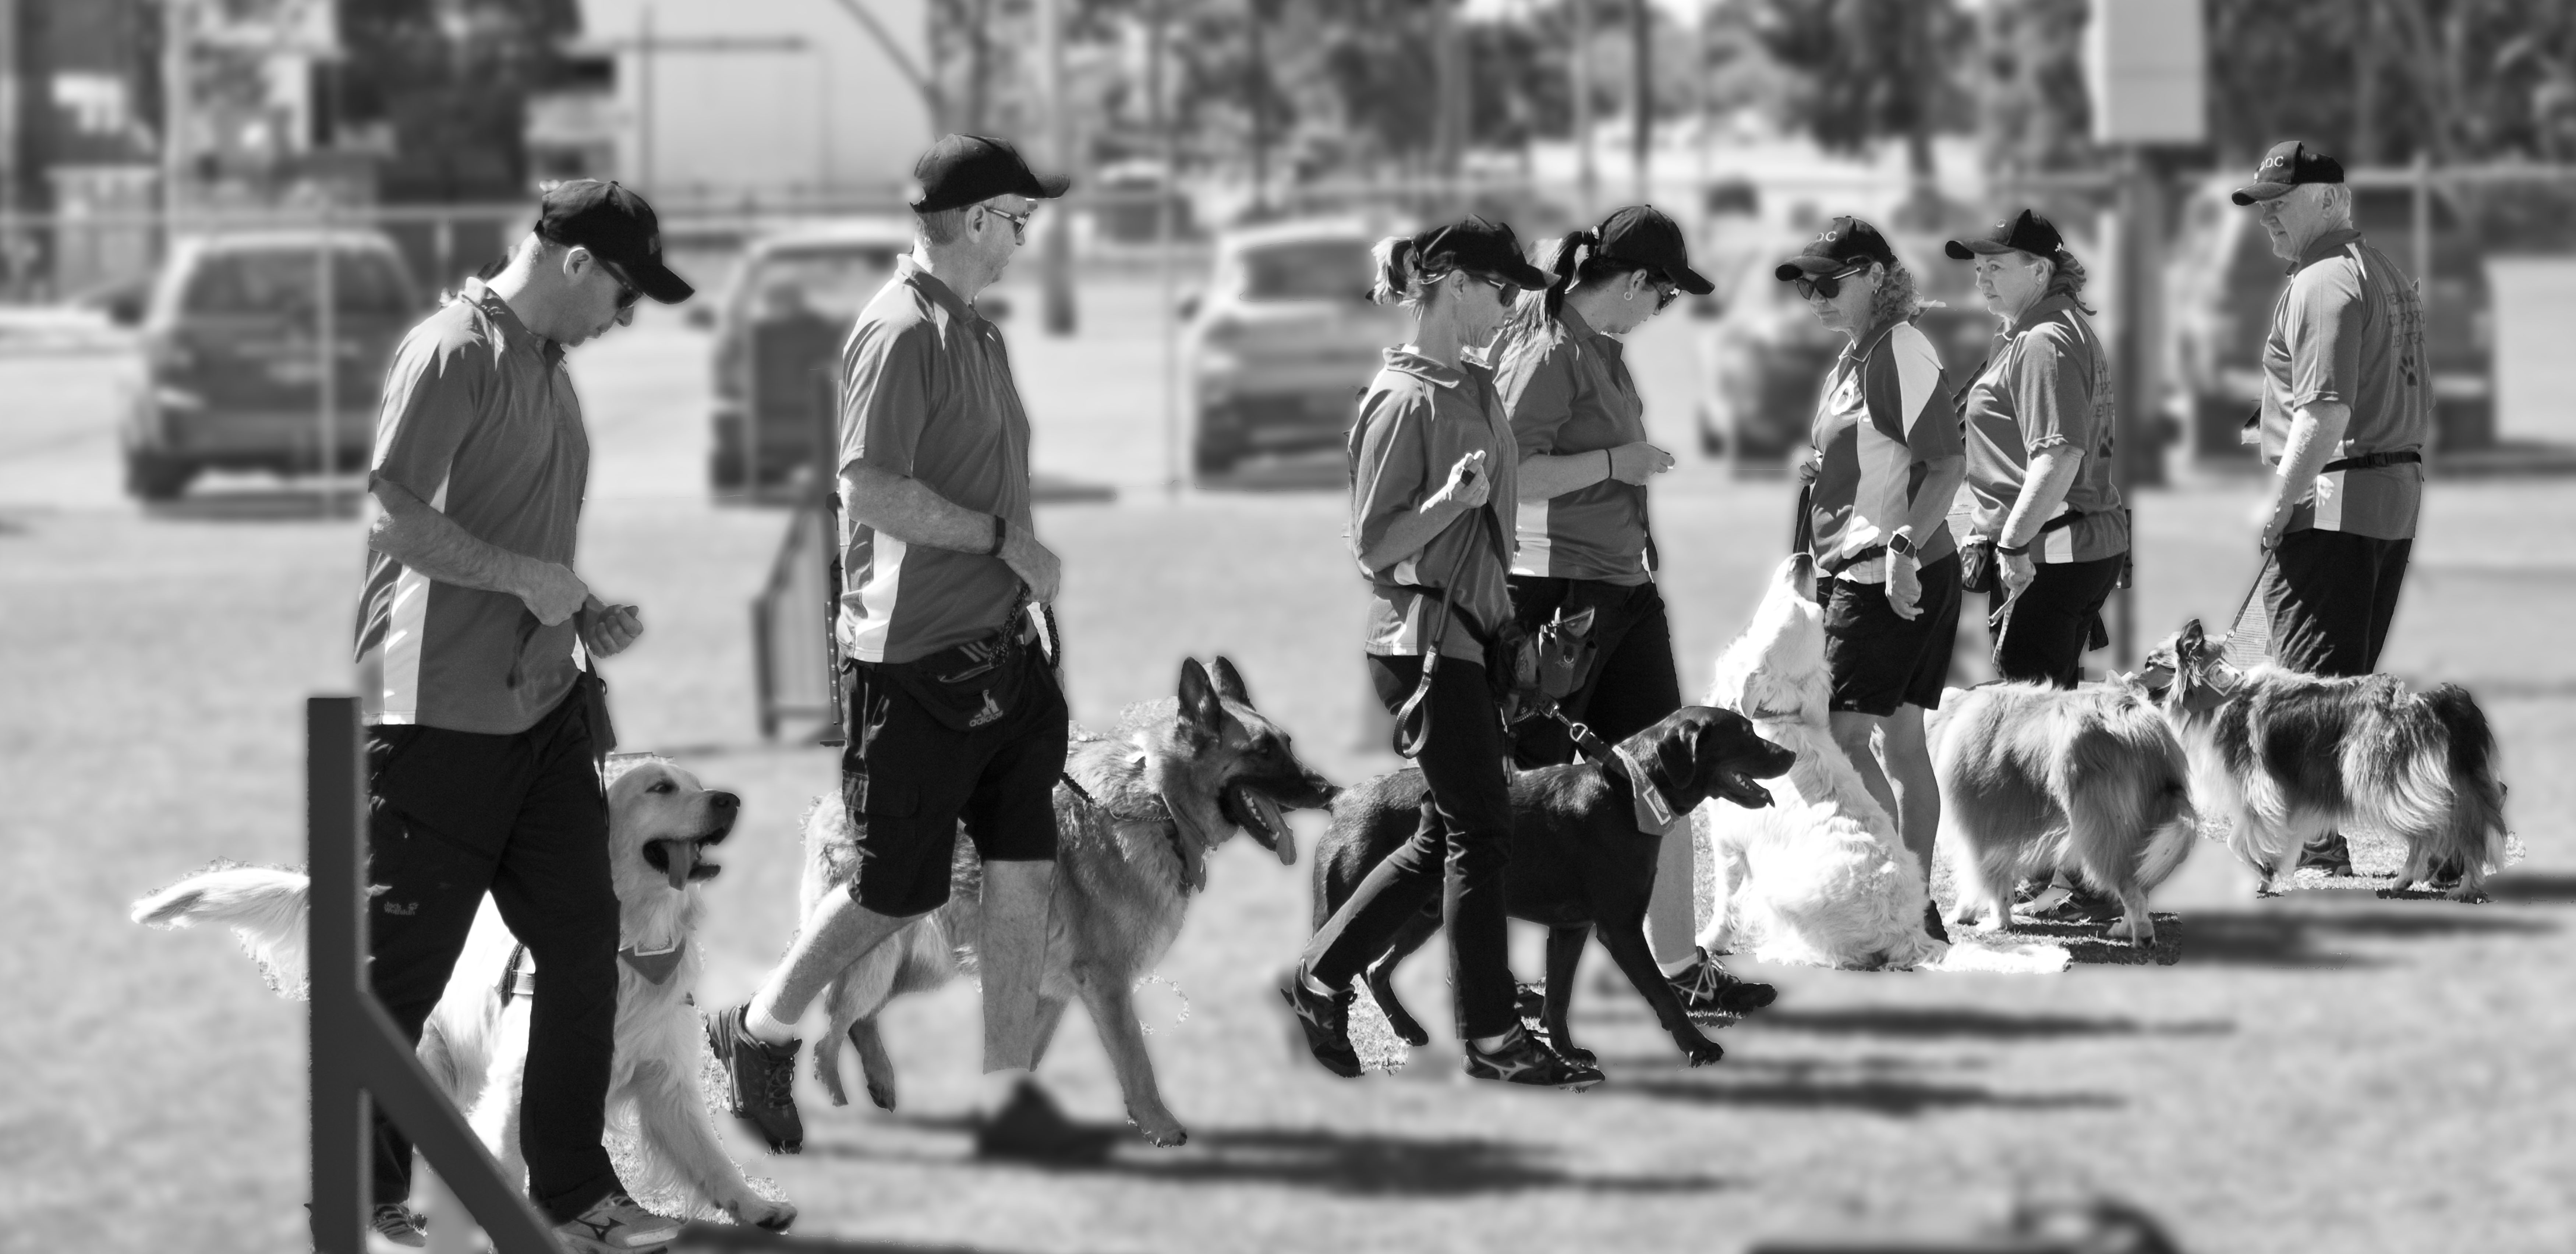 obedience trainging group